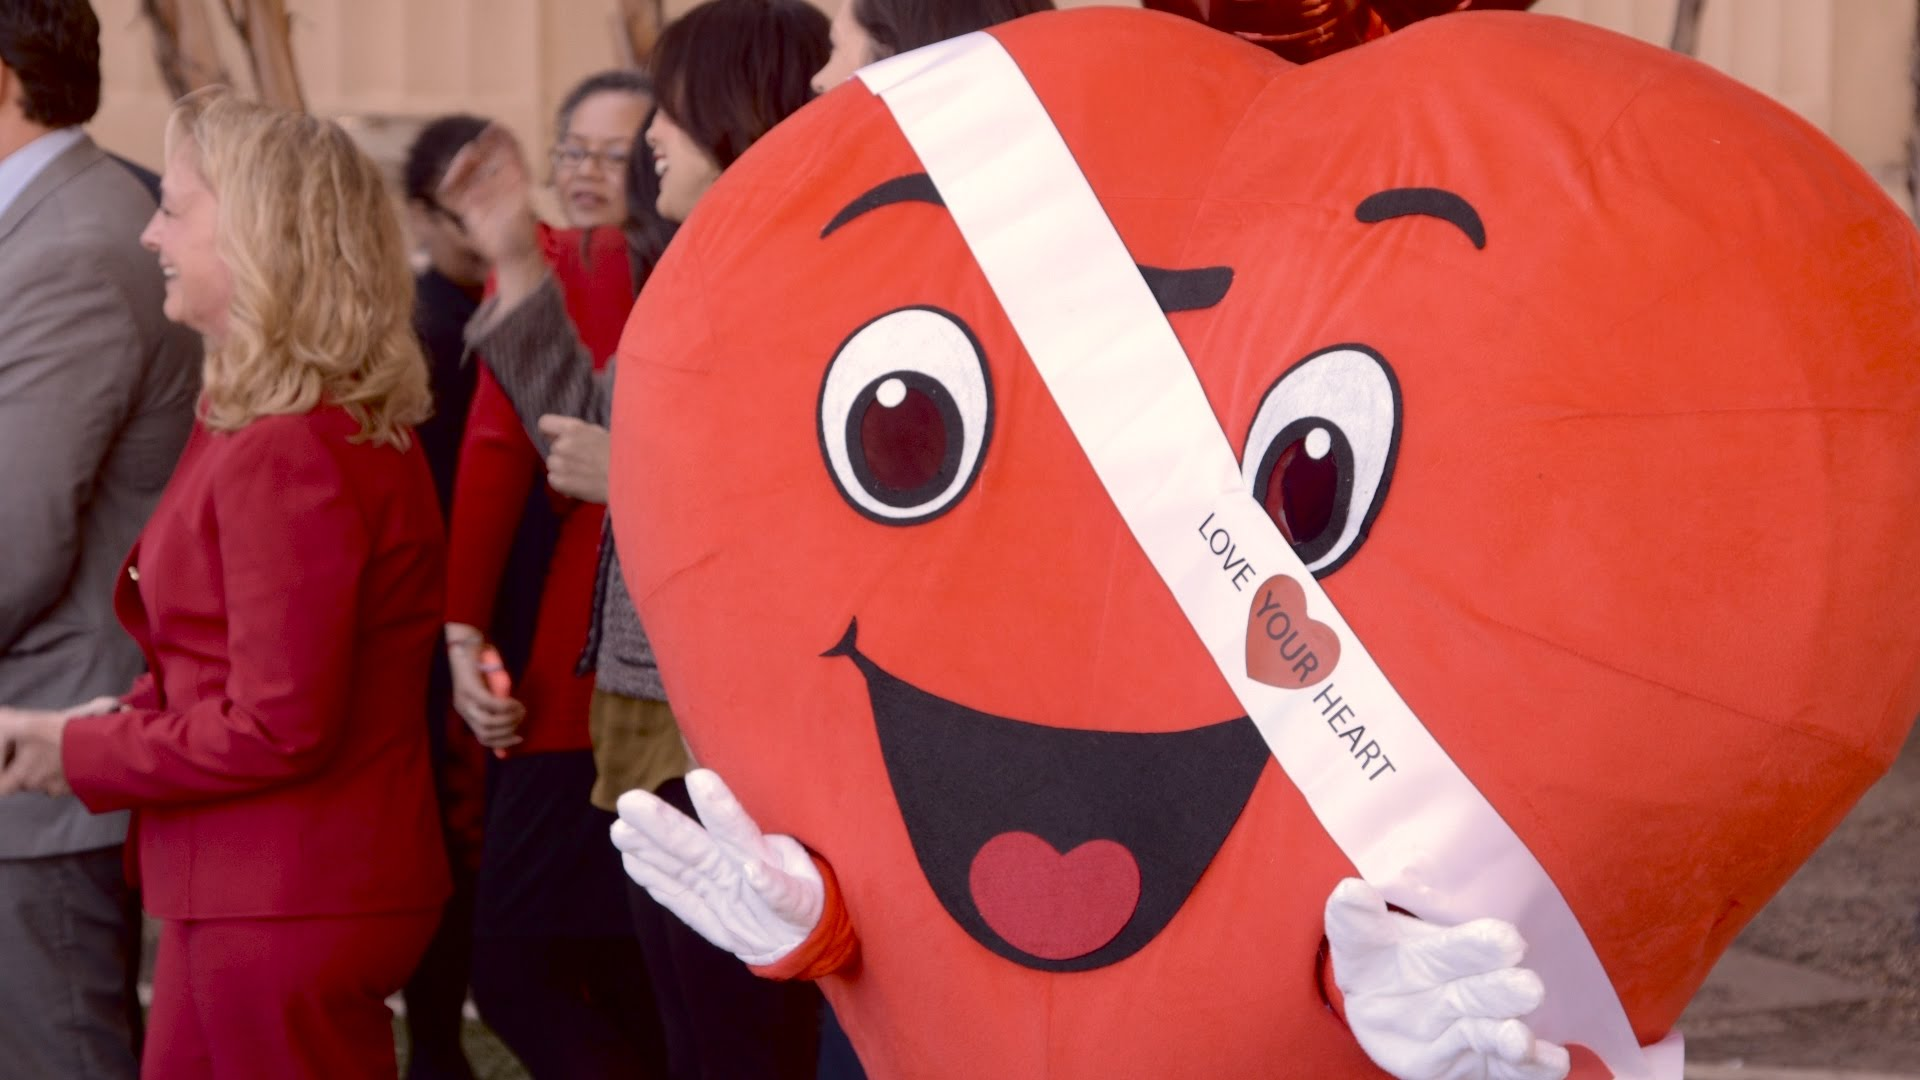 Blood Pressure Checks Urged for All